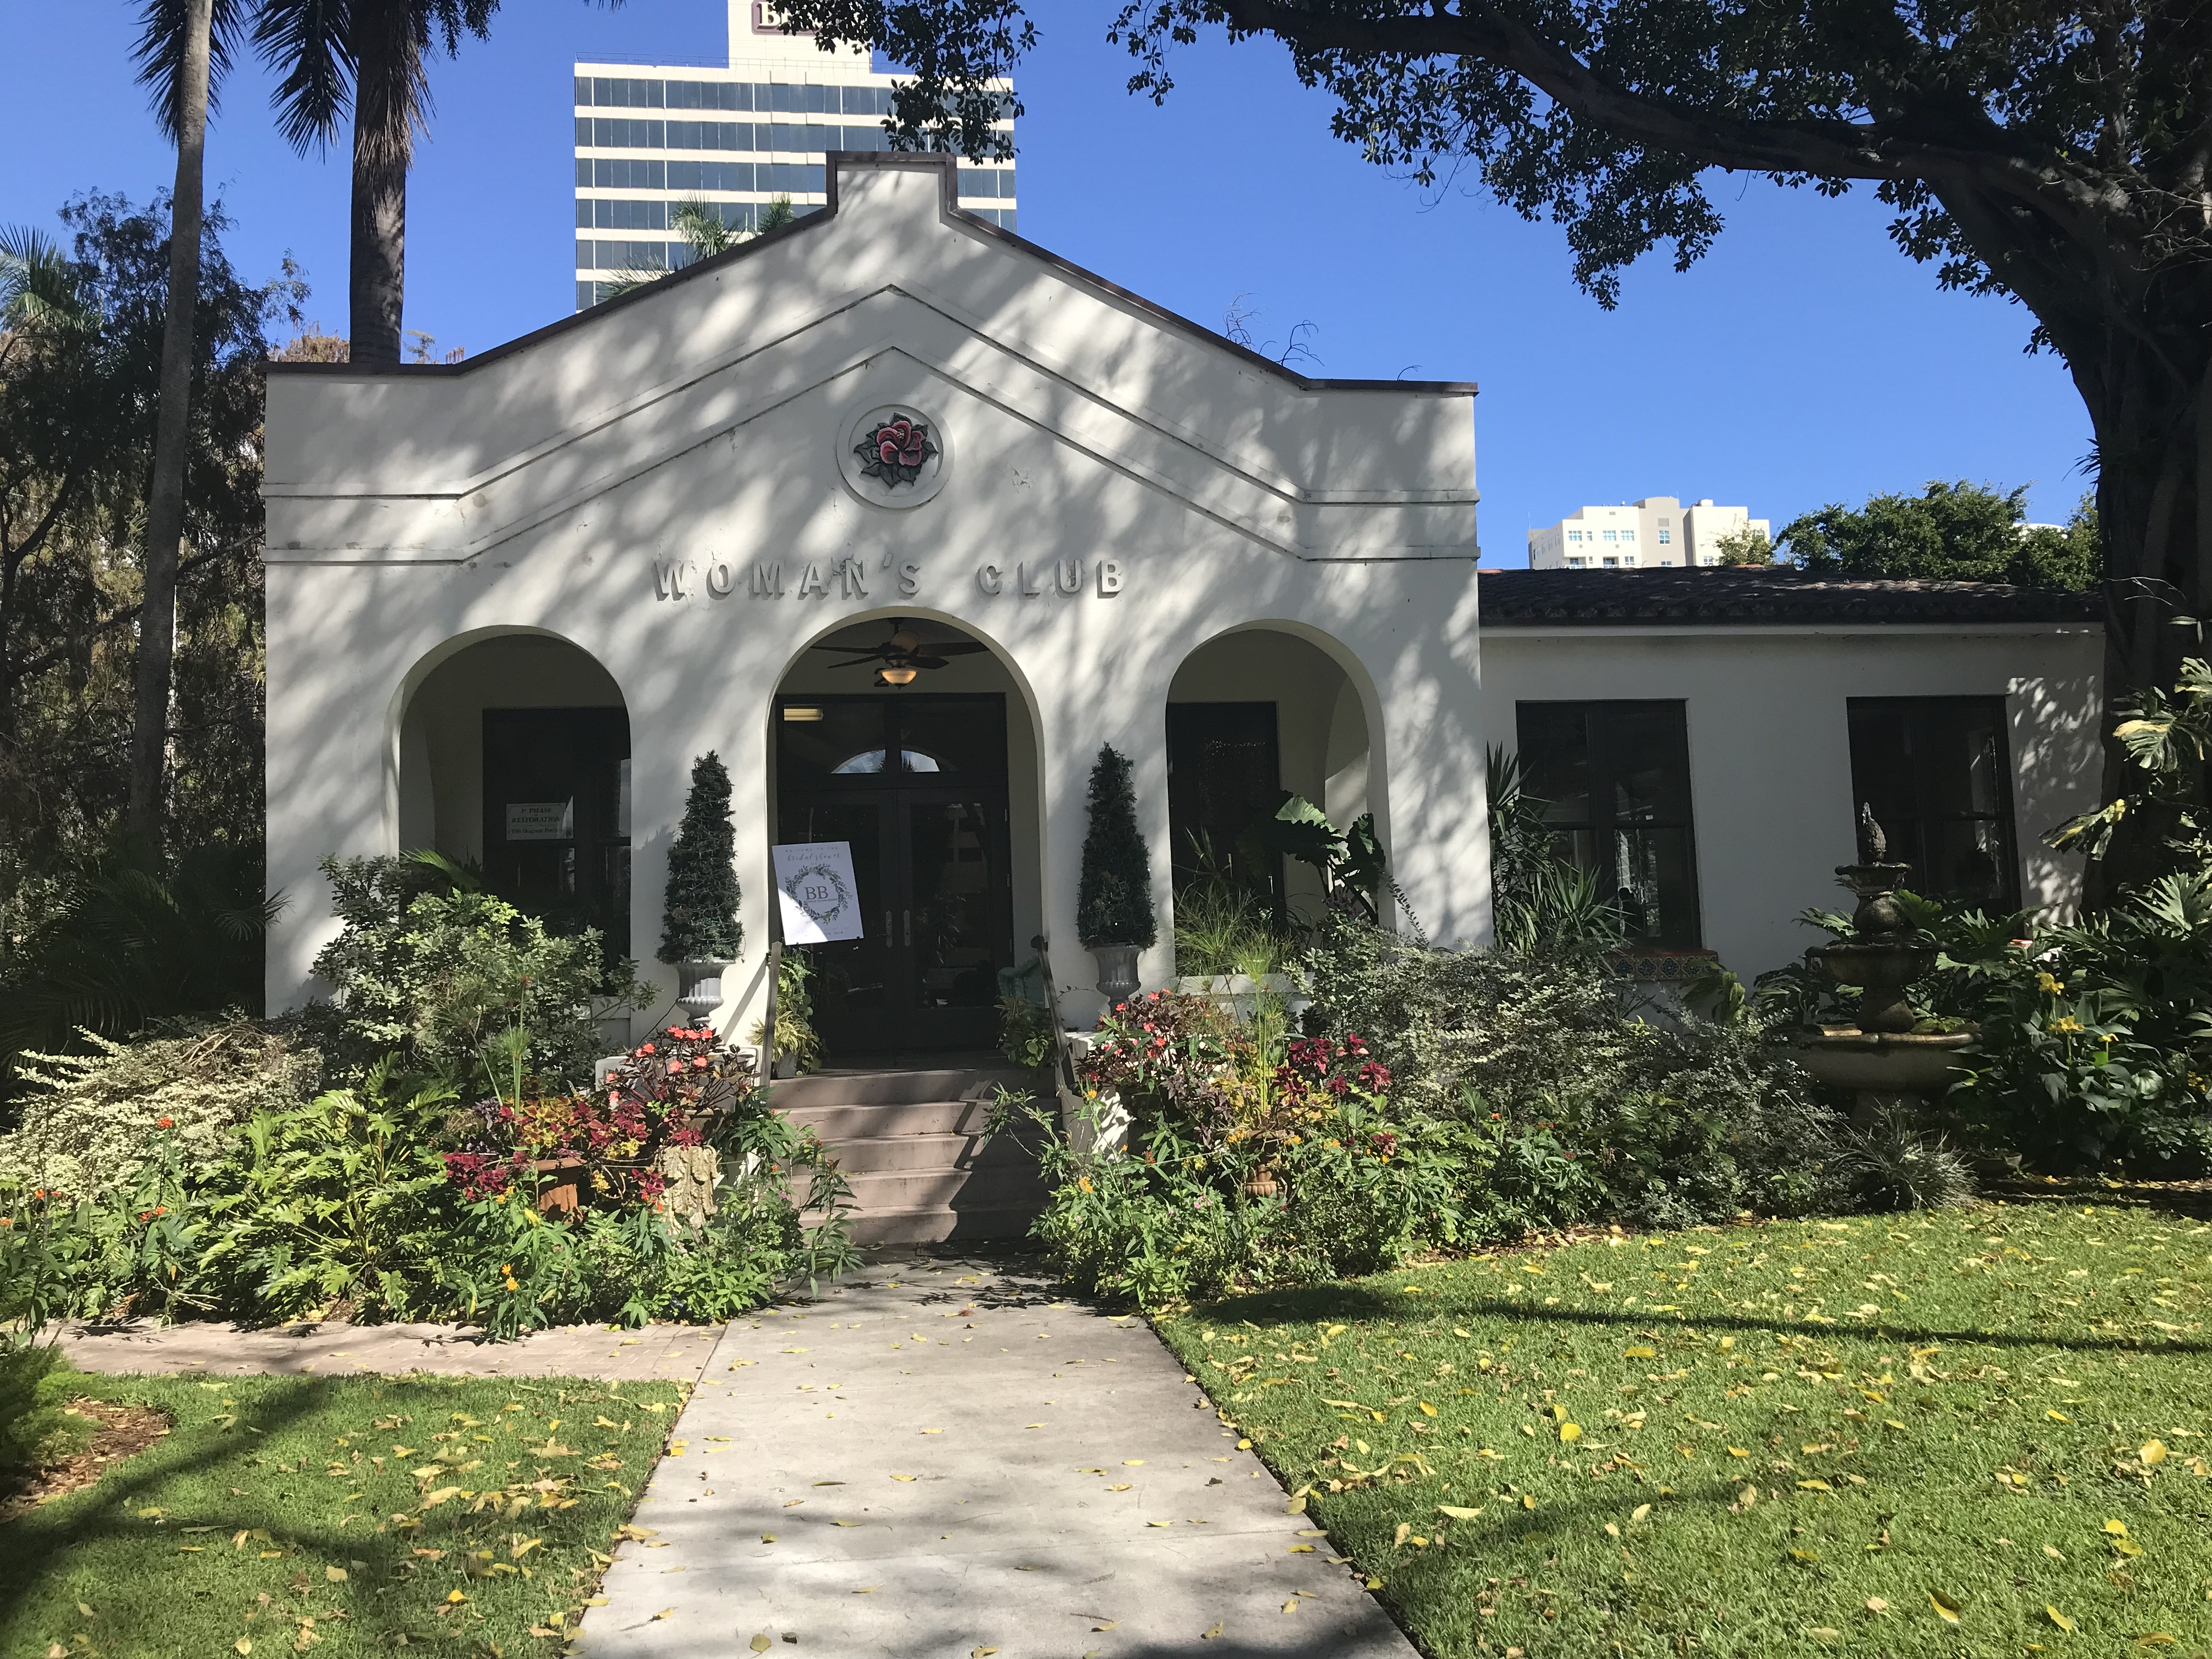 Fort Lauderdale's Women's Club